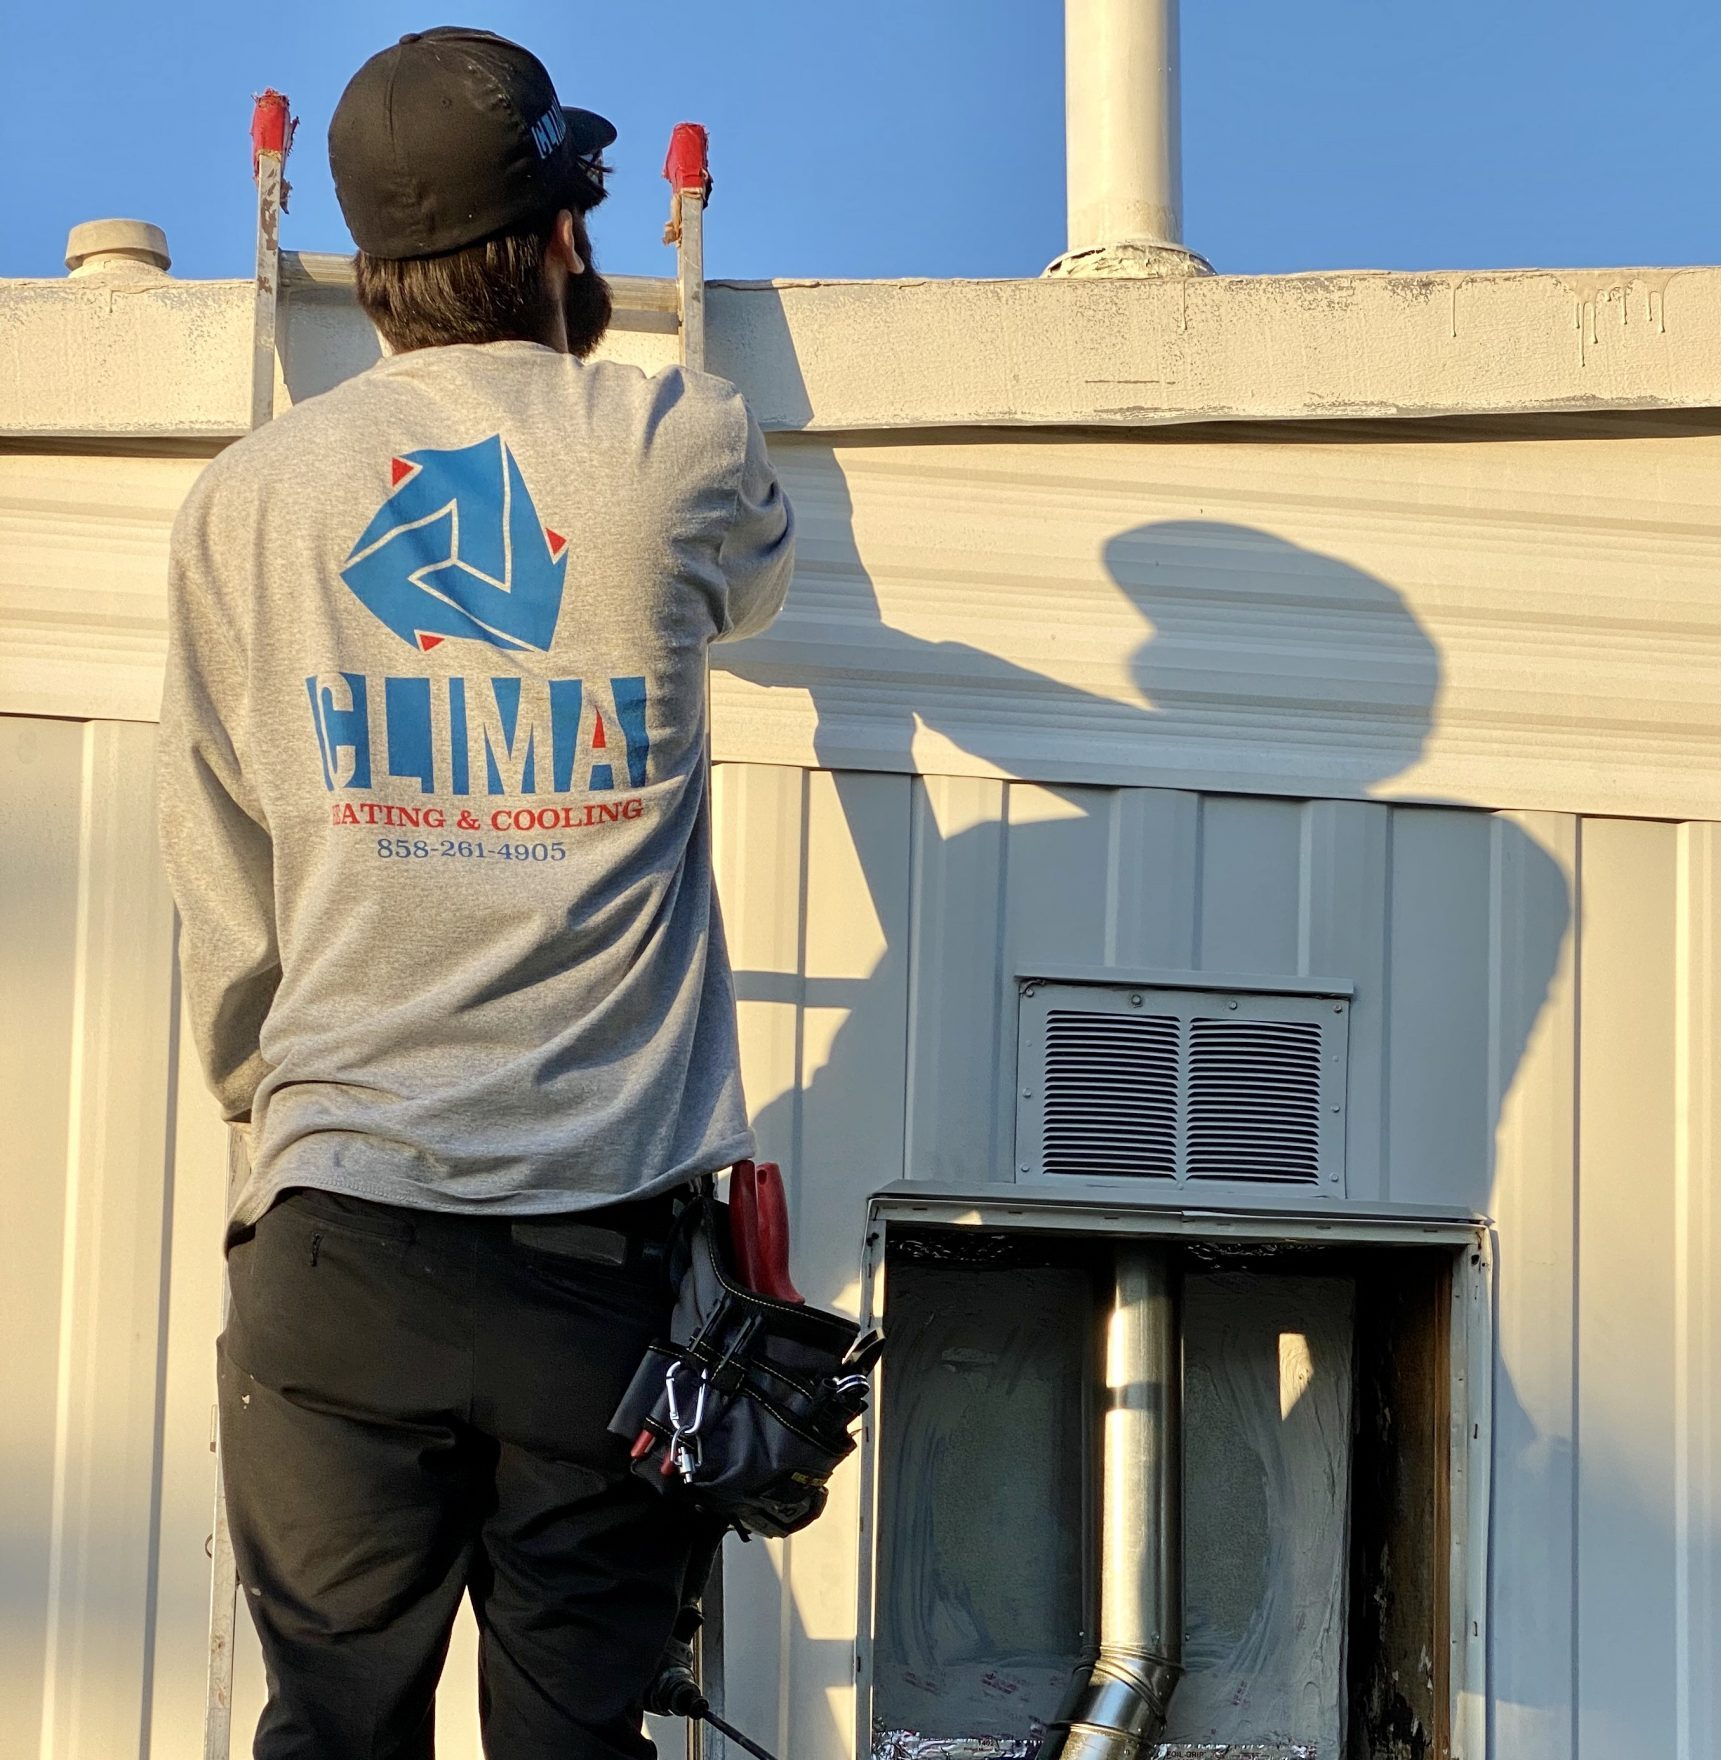 Clima Heating and Cooling technician on a ladder